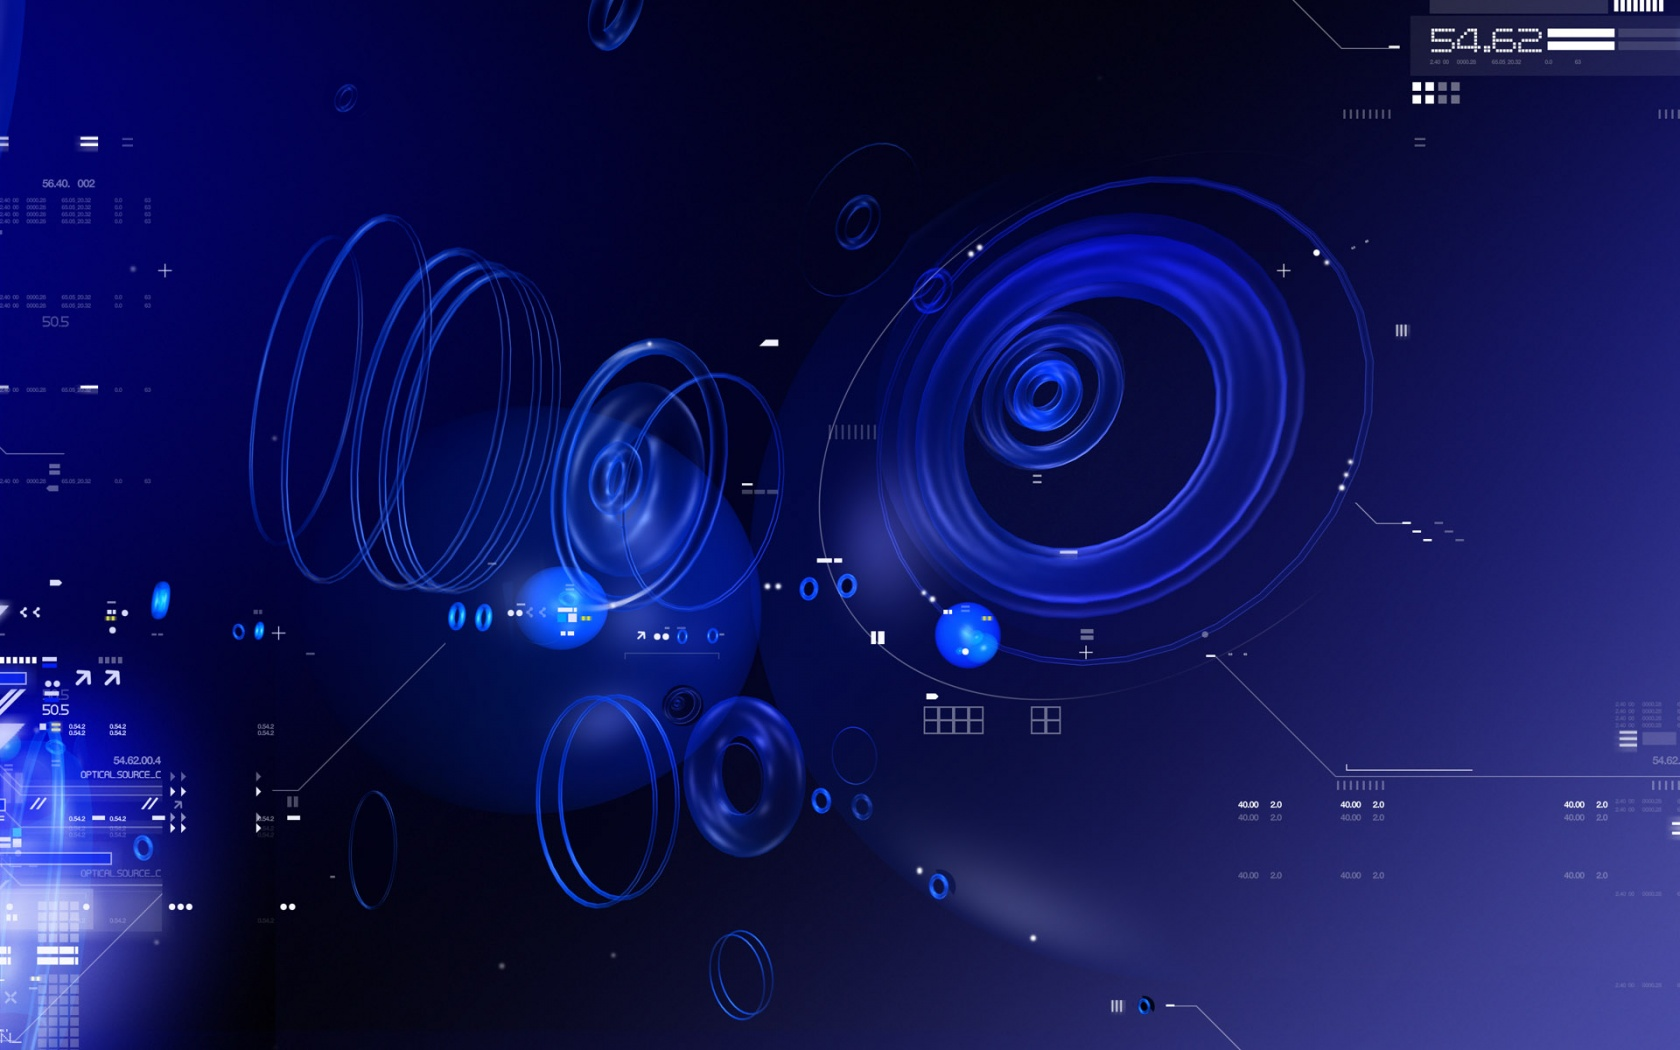 Blue Tech Circles Wallpapers HD Wallpapers 1680x1050